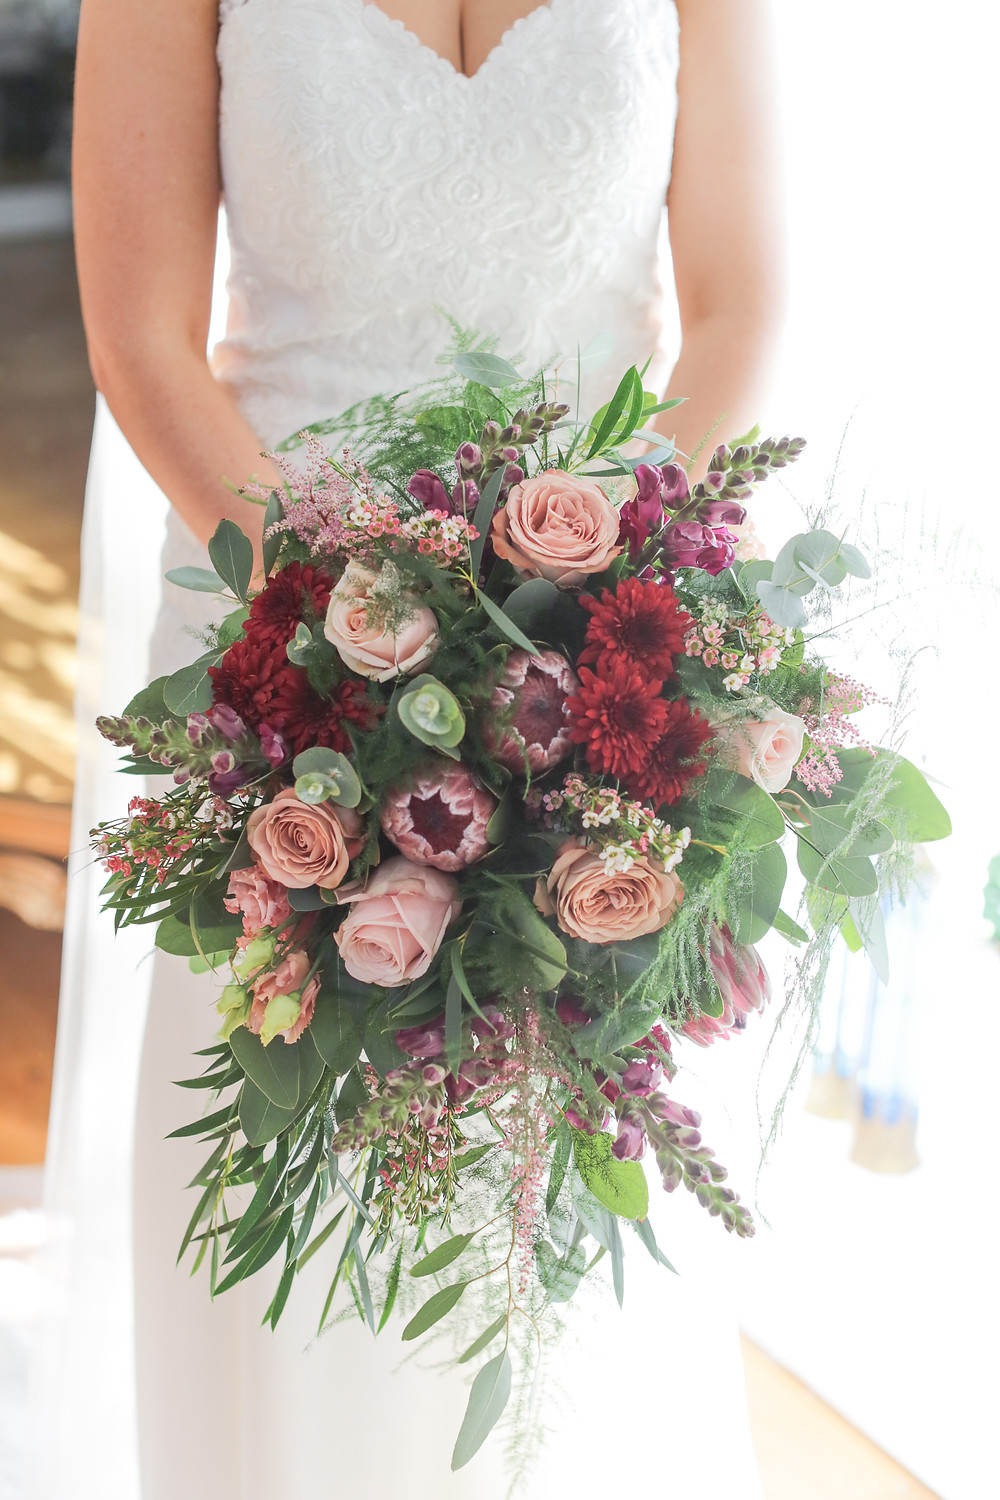 Cascading Autumnal Hand Tied bridal bouquet wedding flowers at Woodhill Hall Northumberland with red blush pink and foliage. Image by Helen Russell Photography